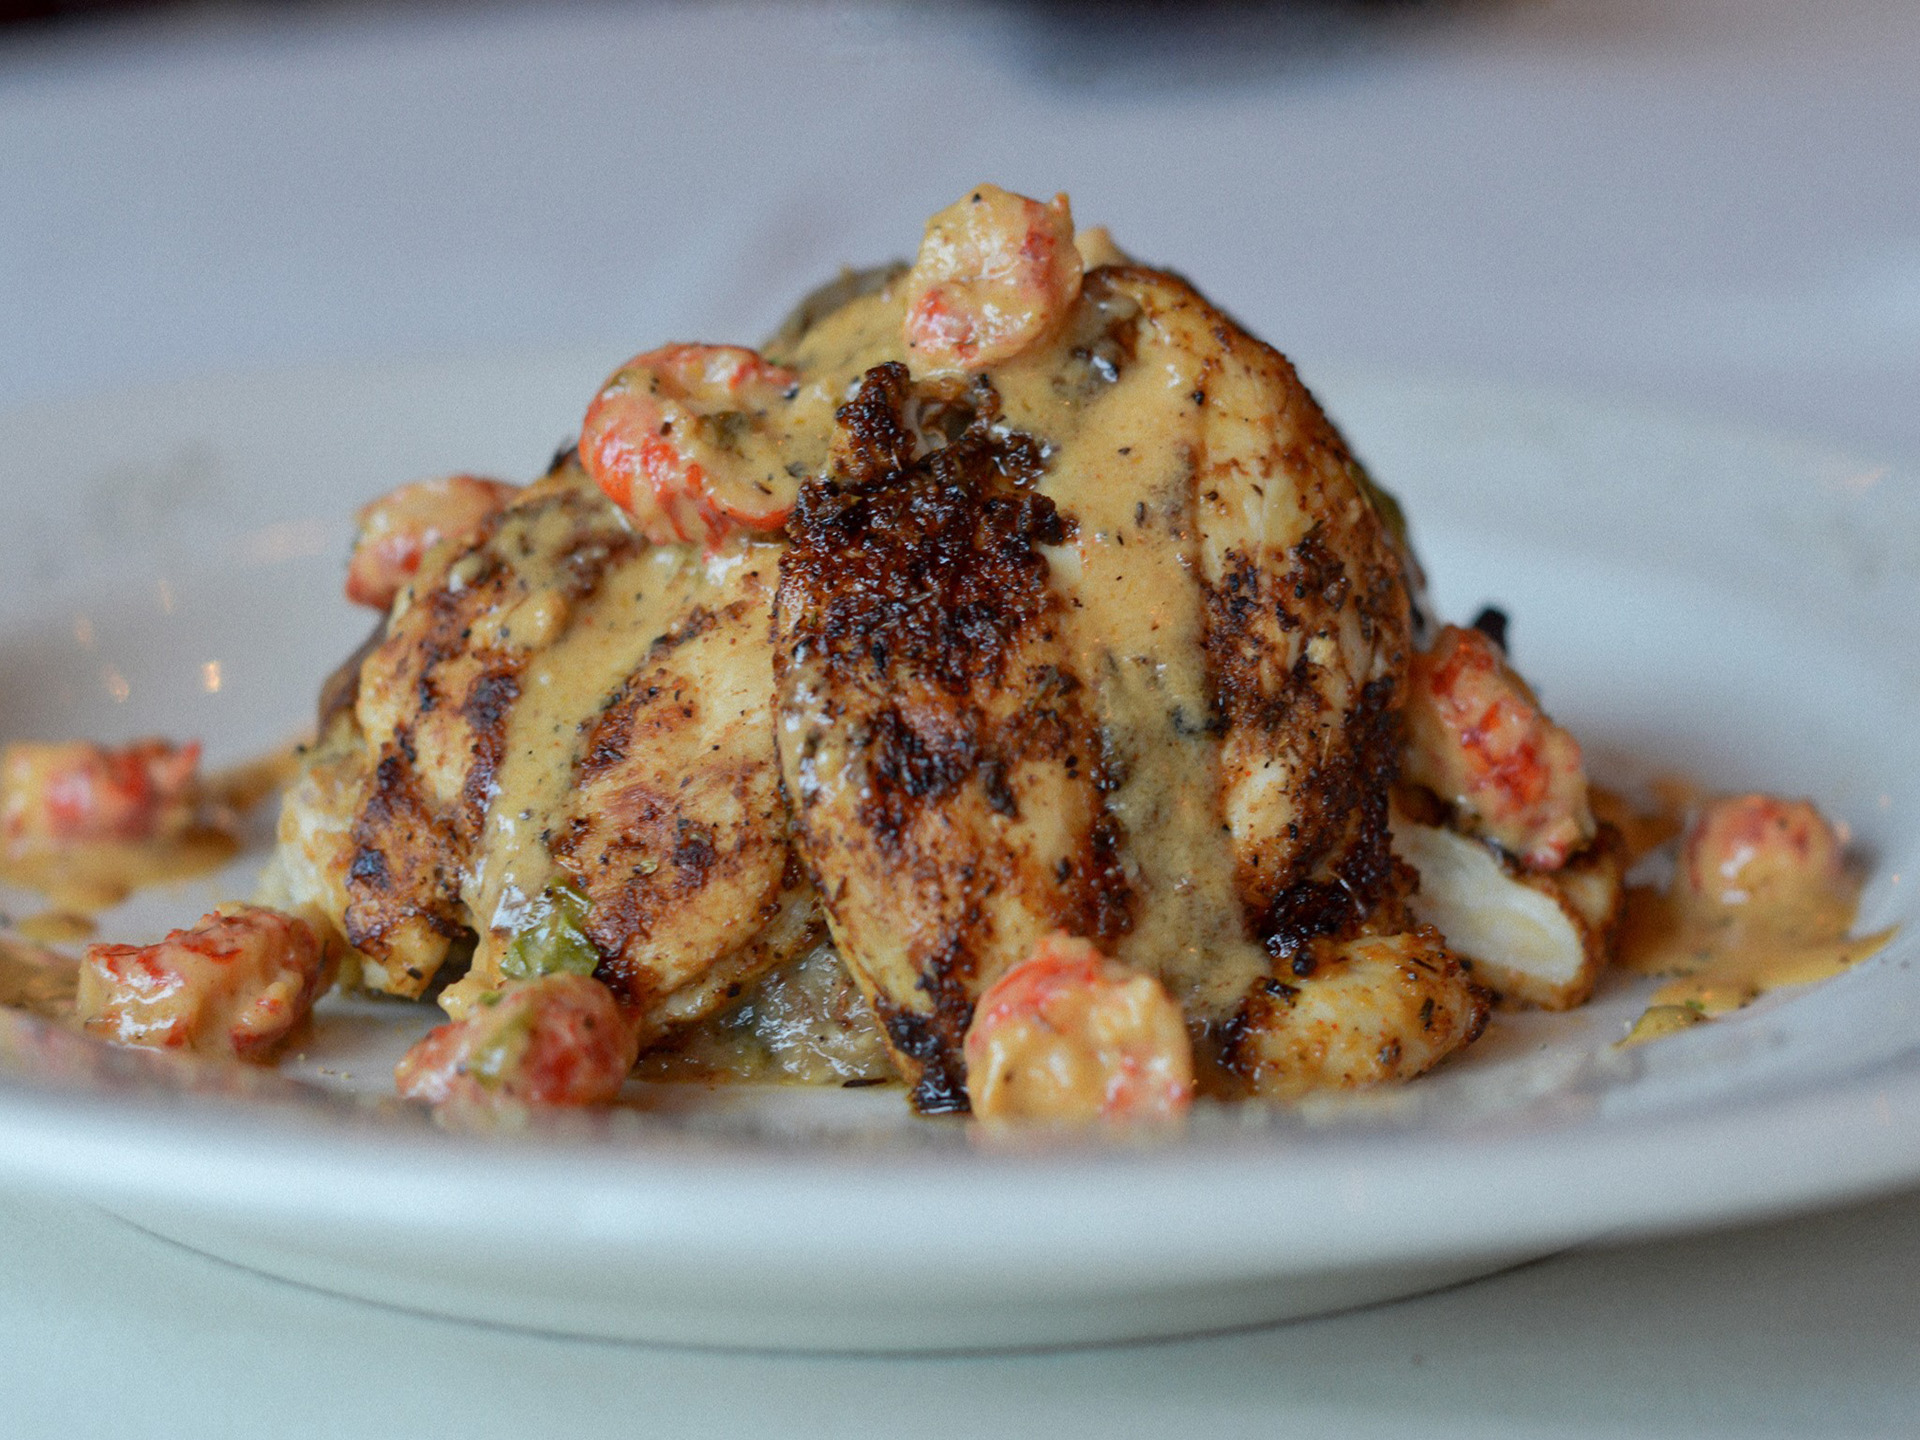 Blackened Bayou Chicken